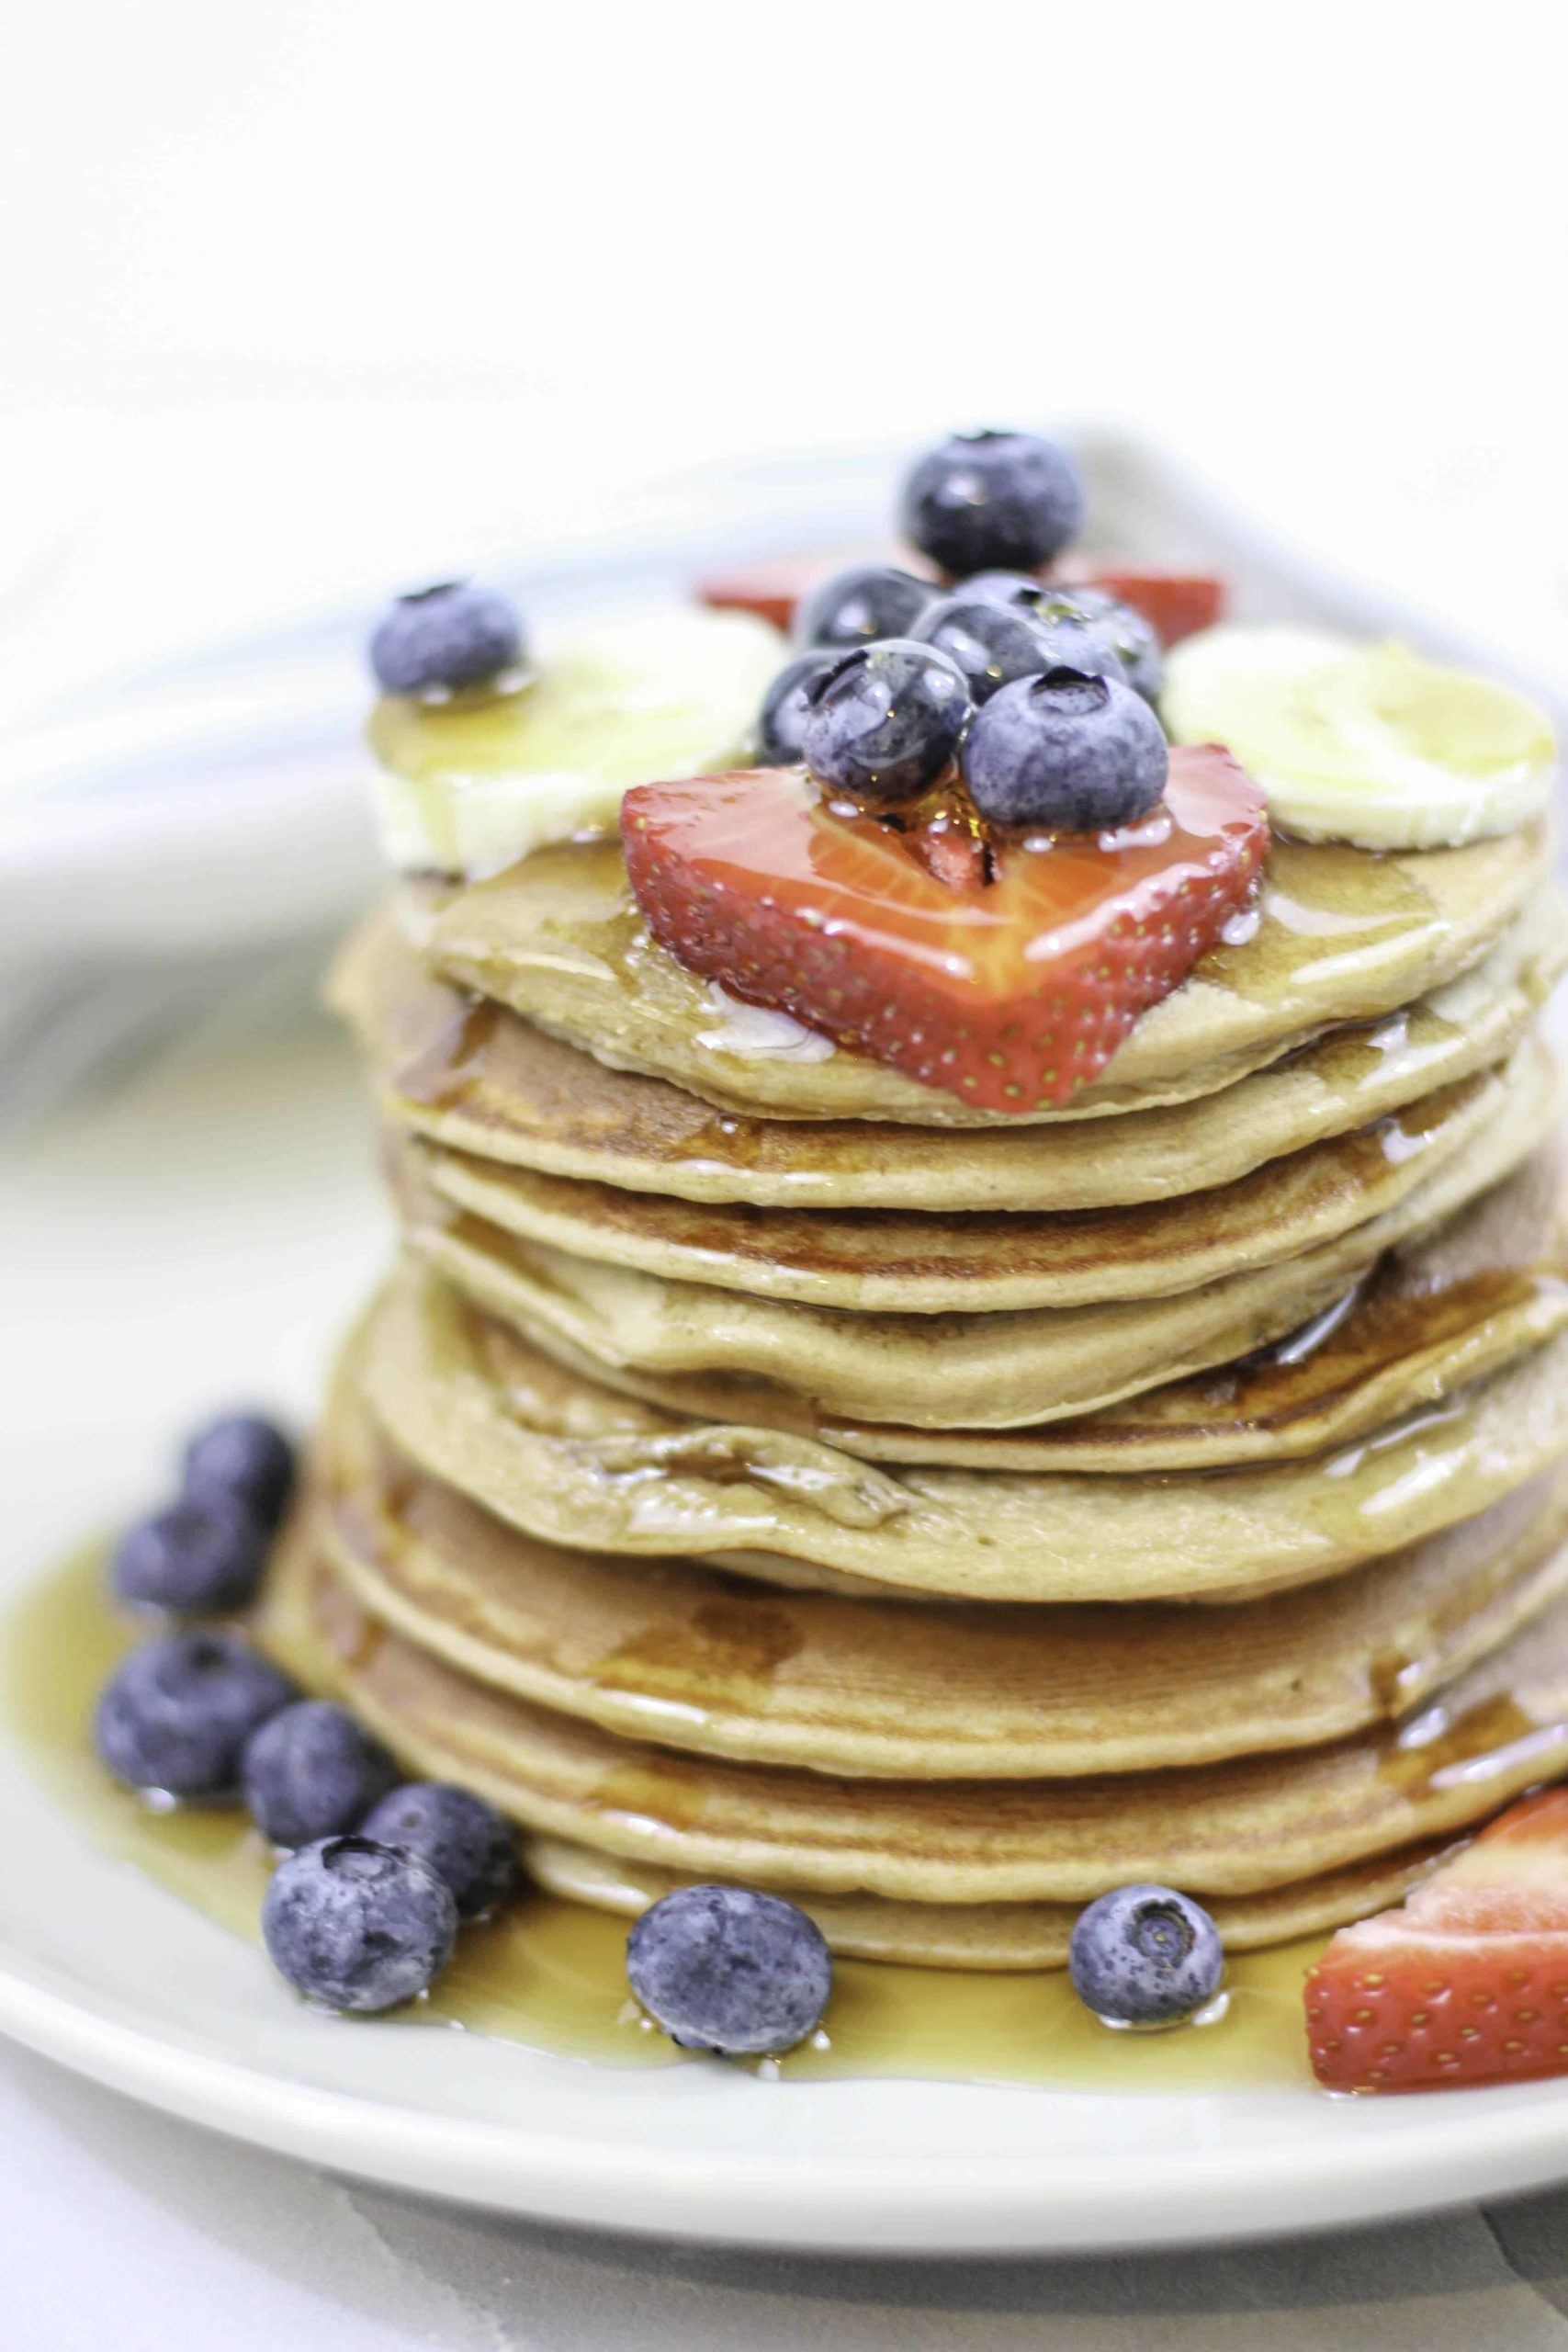 These protein pancakes are delicious and easy and have NO white flour or added sugar. They are the perfect easy protein pancakes! #proteinpancakes #proteinpancakerecipe